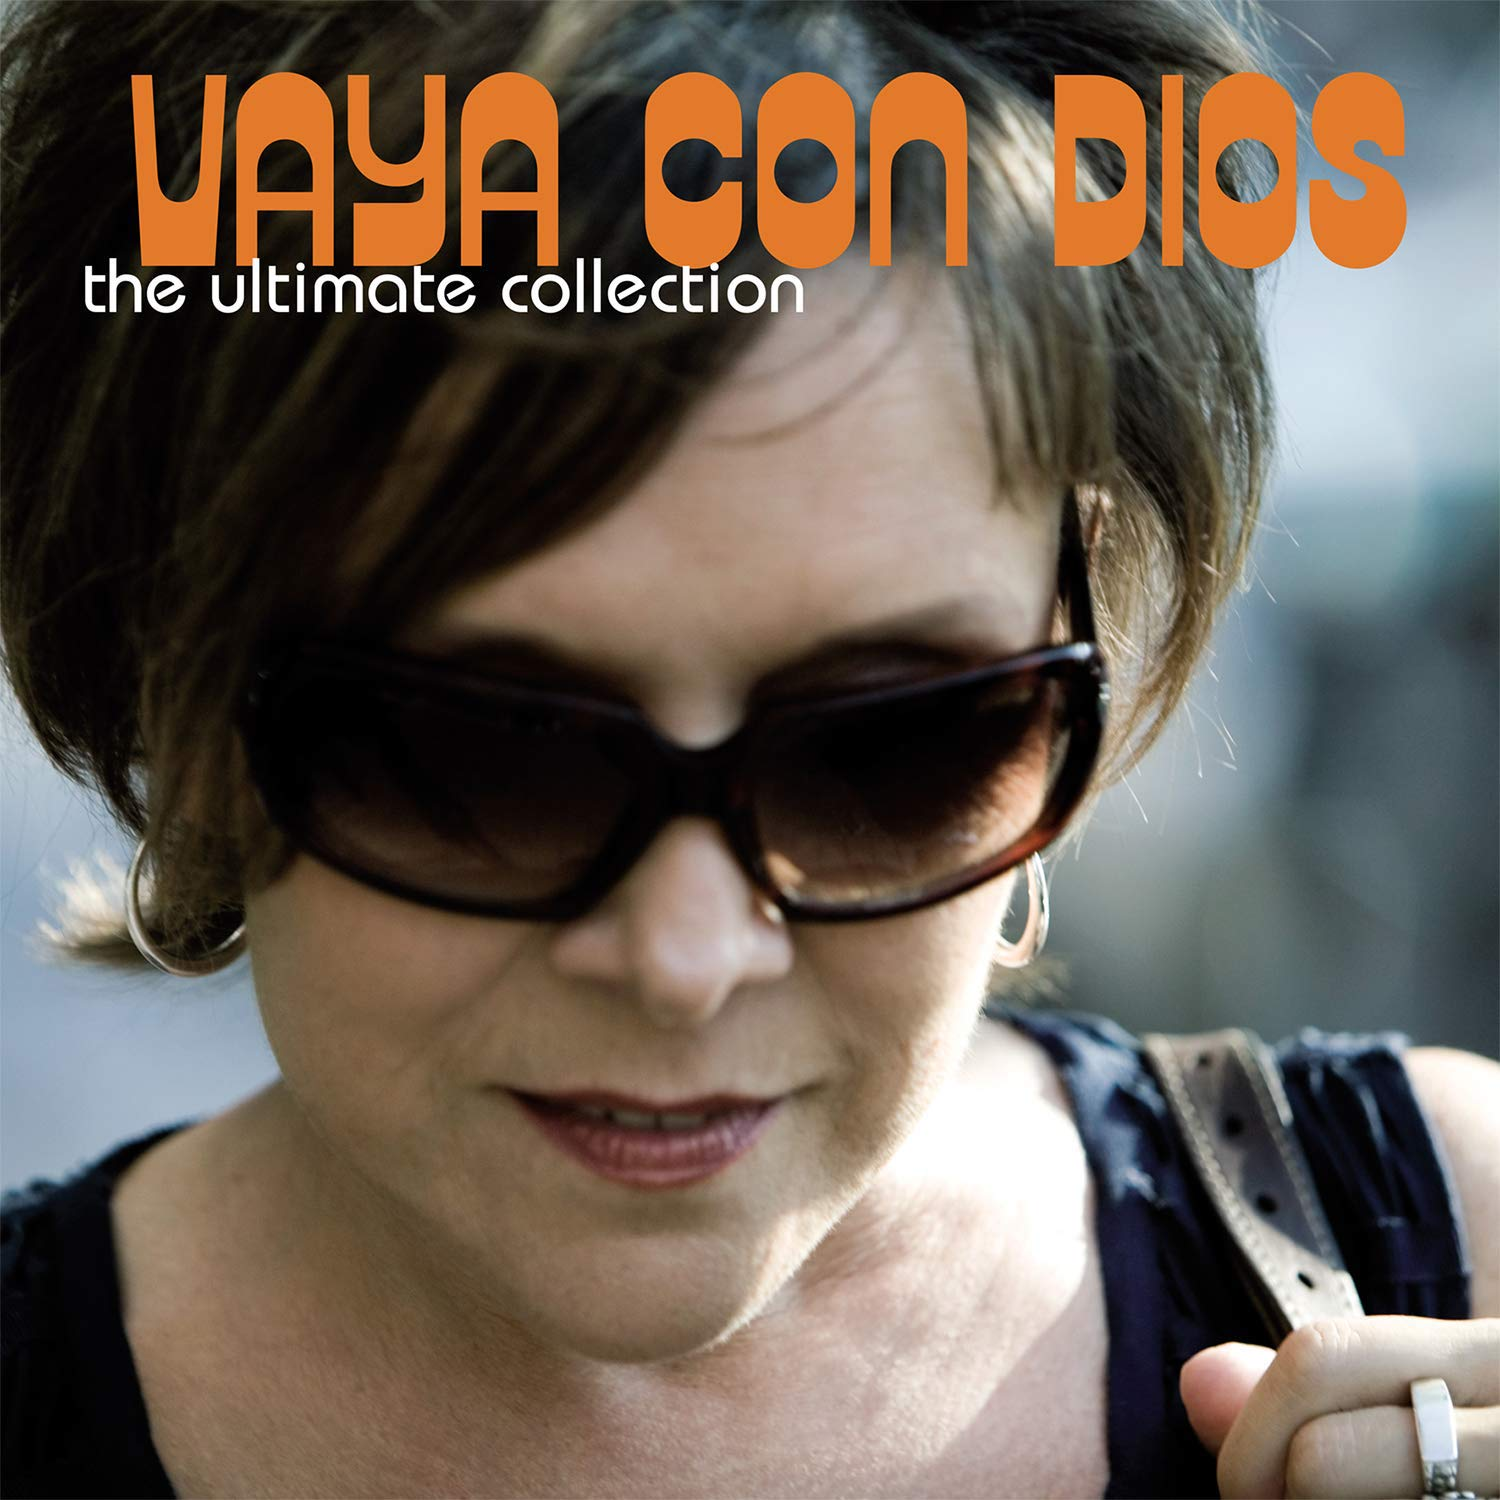 Vaya Con Dios - The Ultimate Collection [2LP] (LIMITED TRANSPARENT 180 Gram Audiophile Vinyl, gatefold, part of the brewed in Belgium series, numbered to 1000) - Urban Vinyl | Records, Headphones, and more.